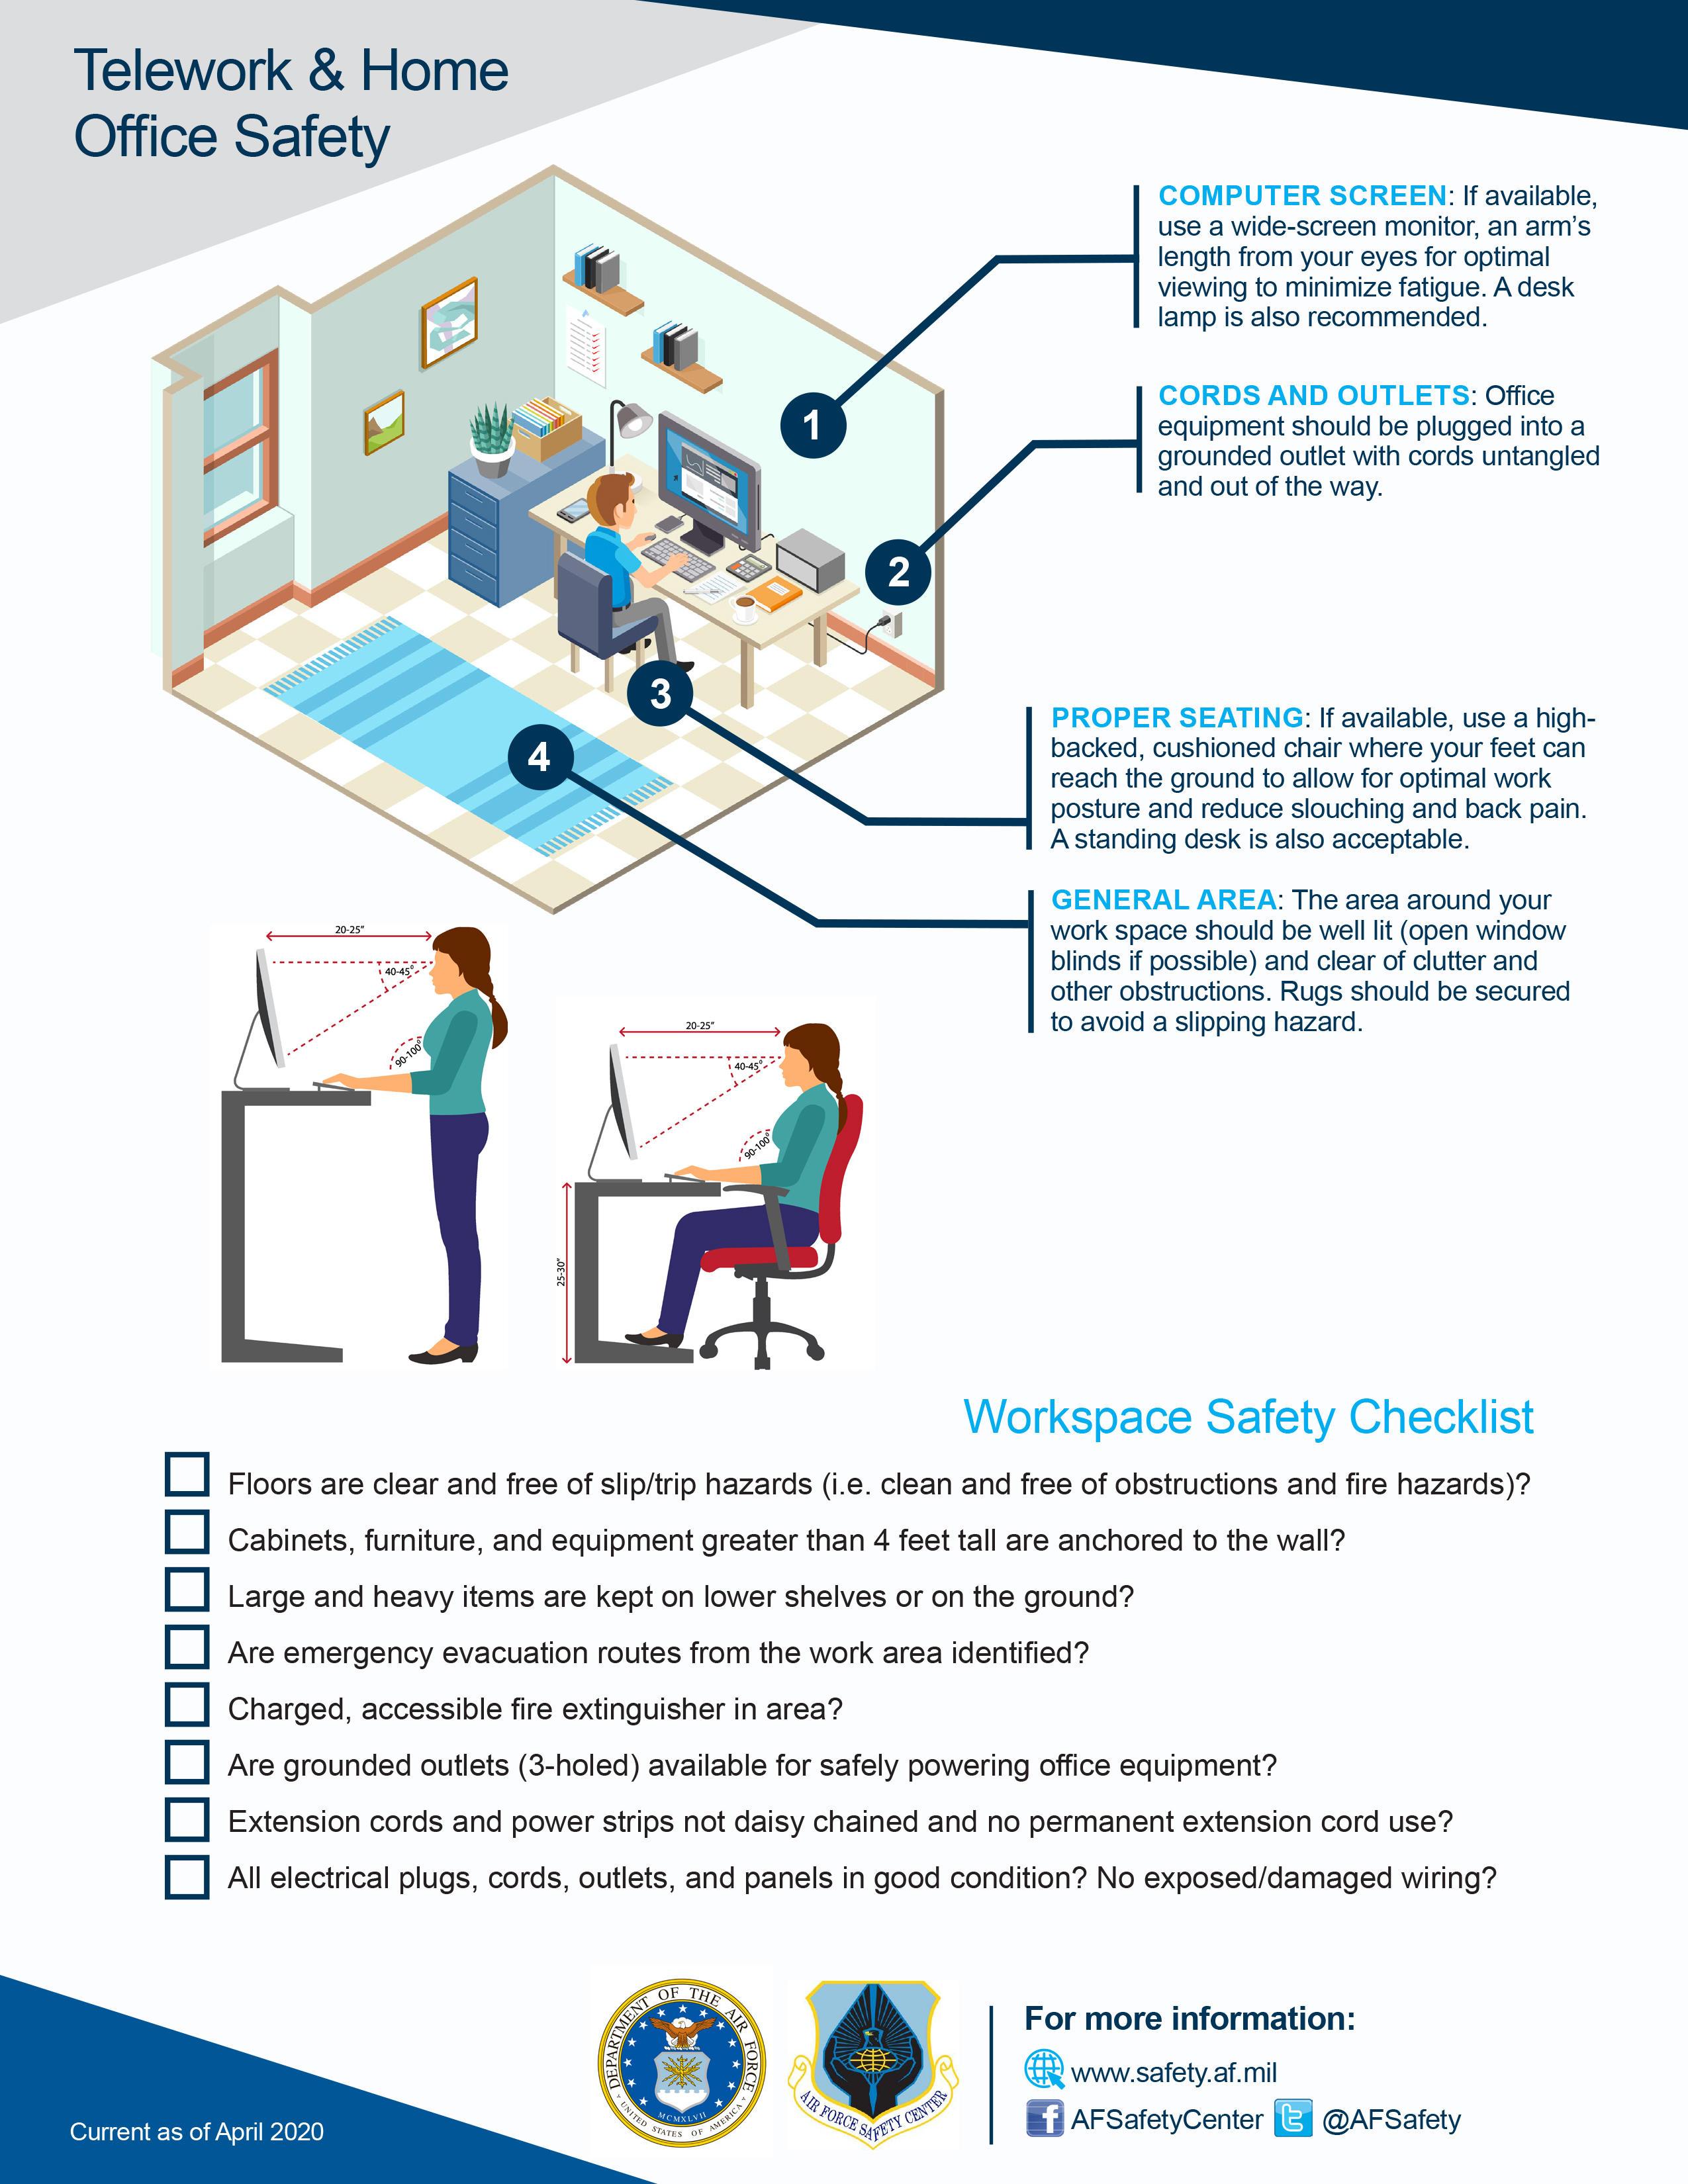 Telework & Home Office Safety Checklist